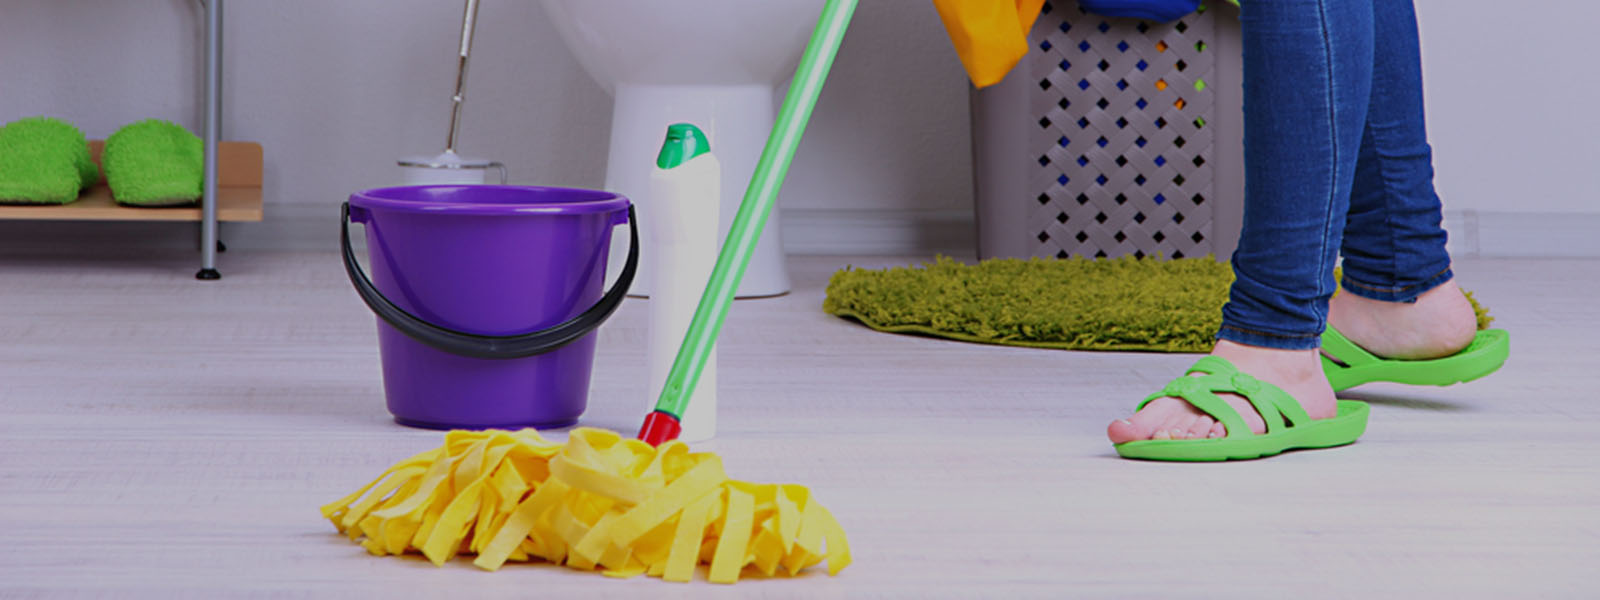 Professional Cleaners Services Barnet